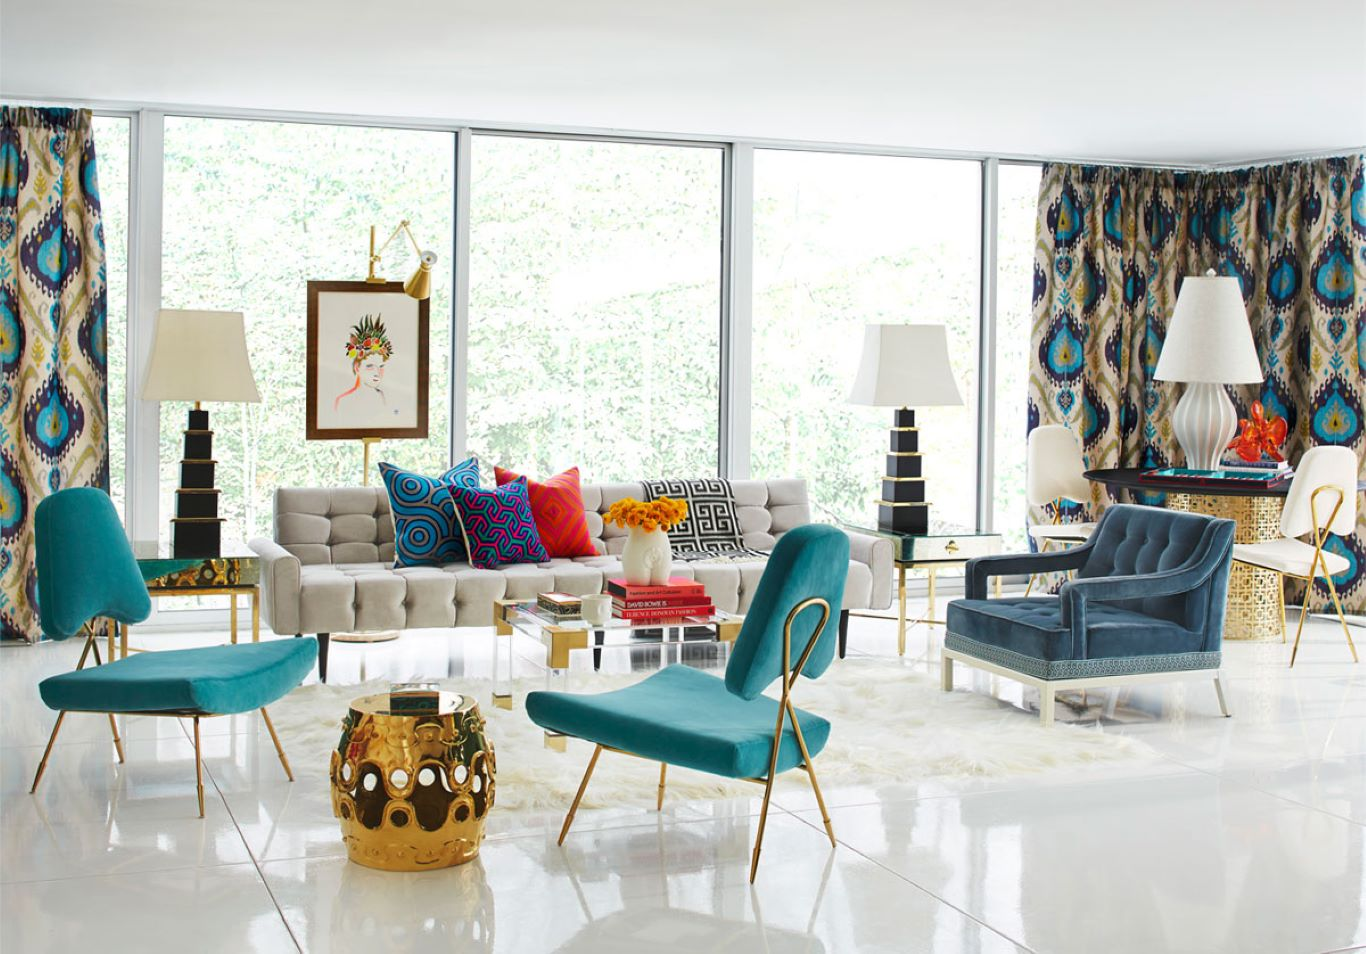 Heavily patterned curtains and cushions contrast the modern furniture in the lounge